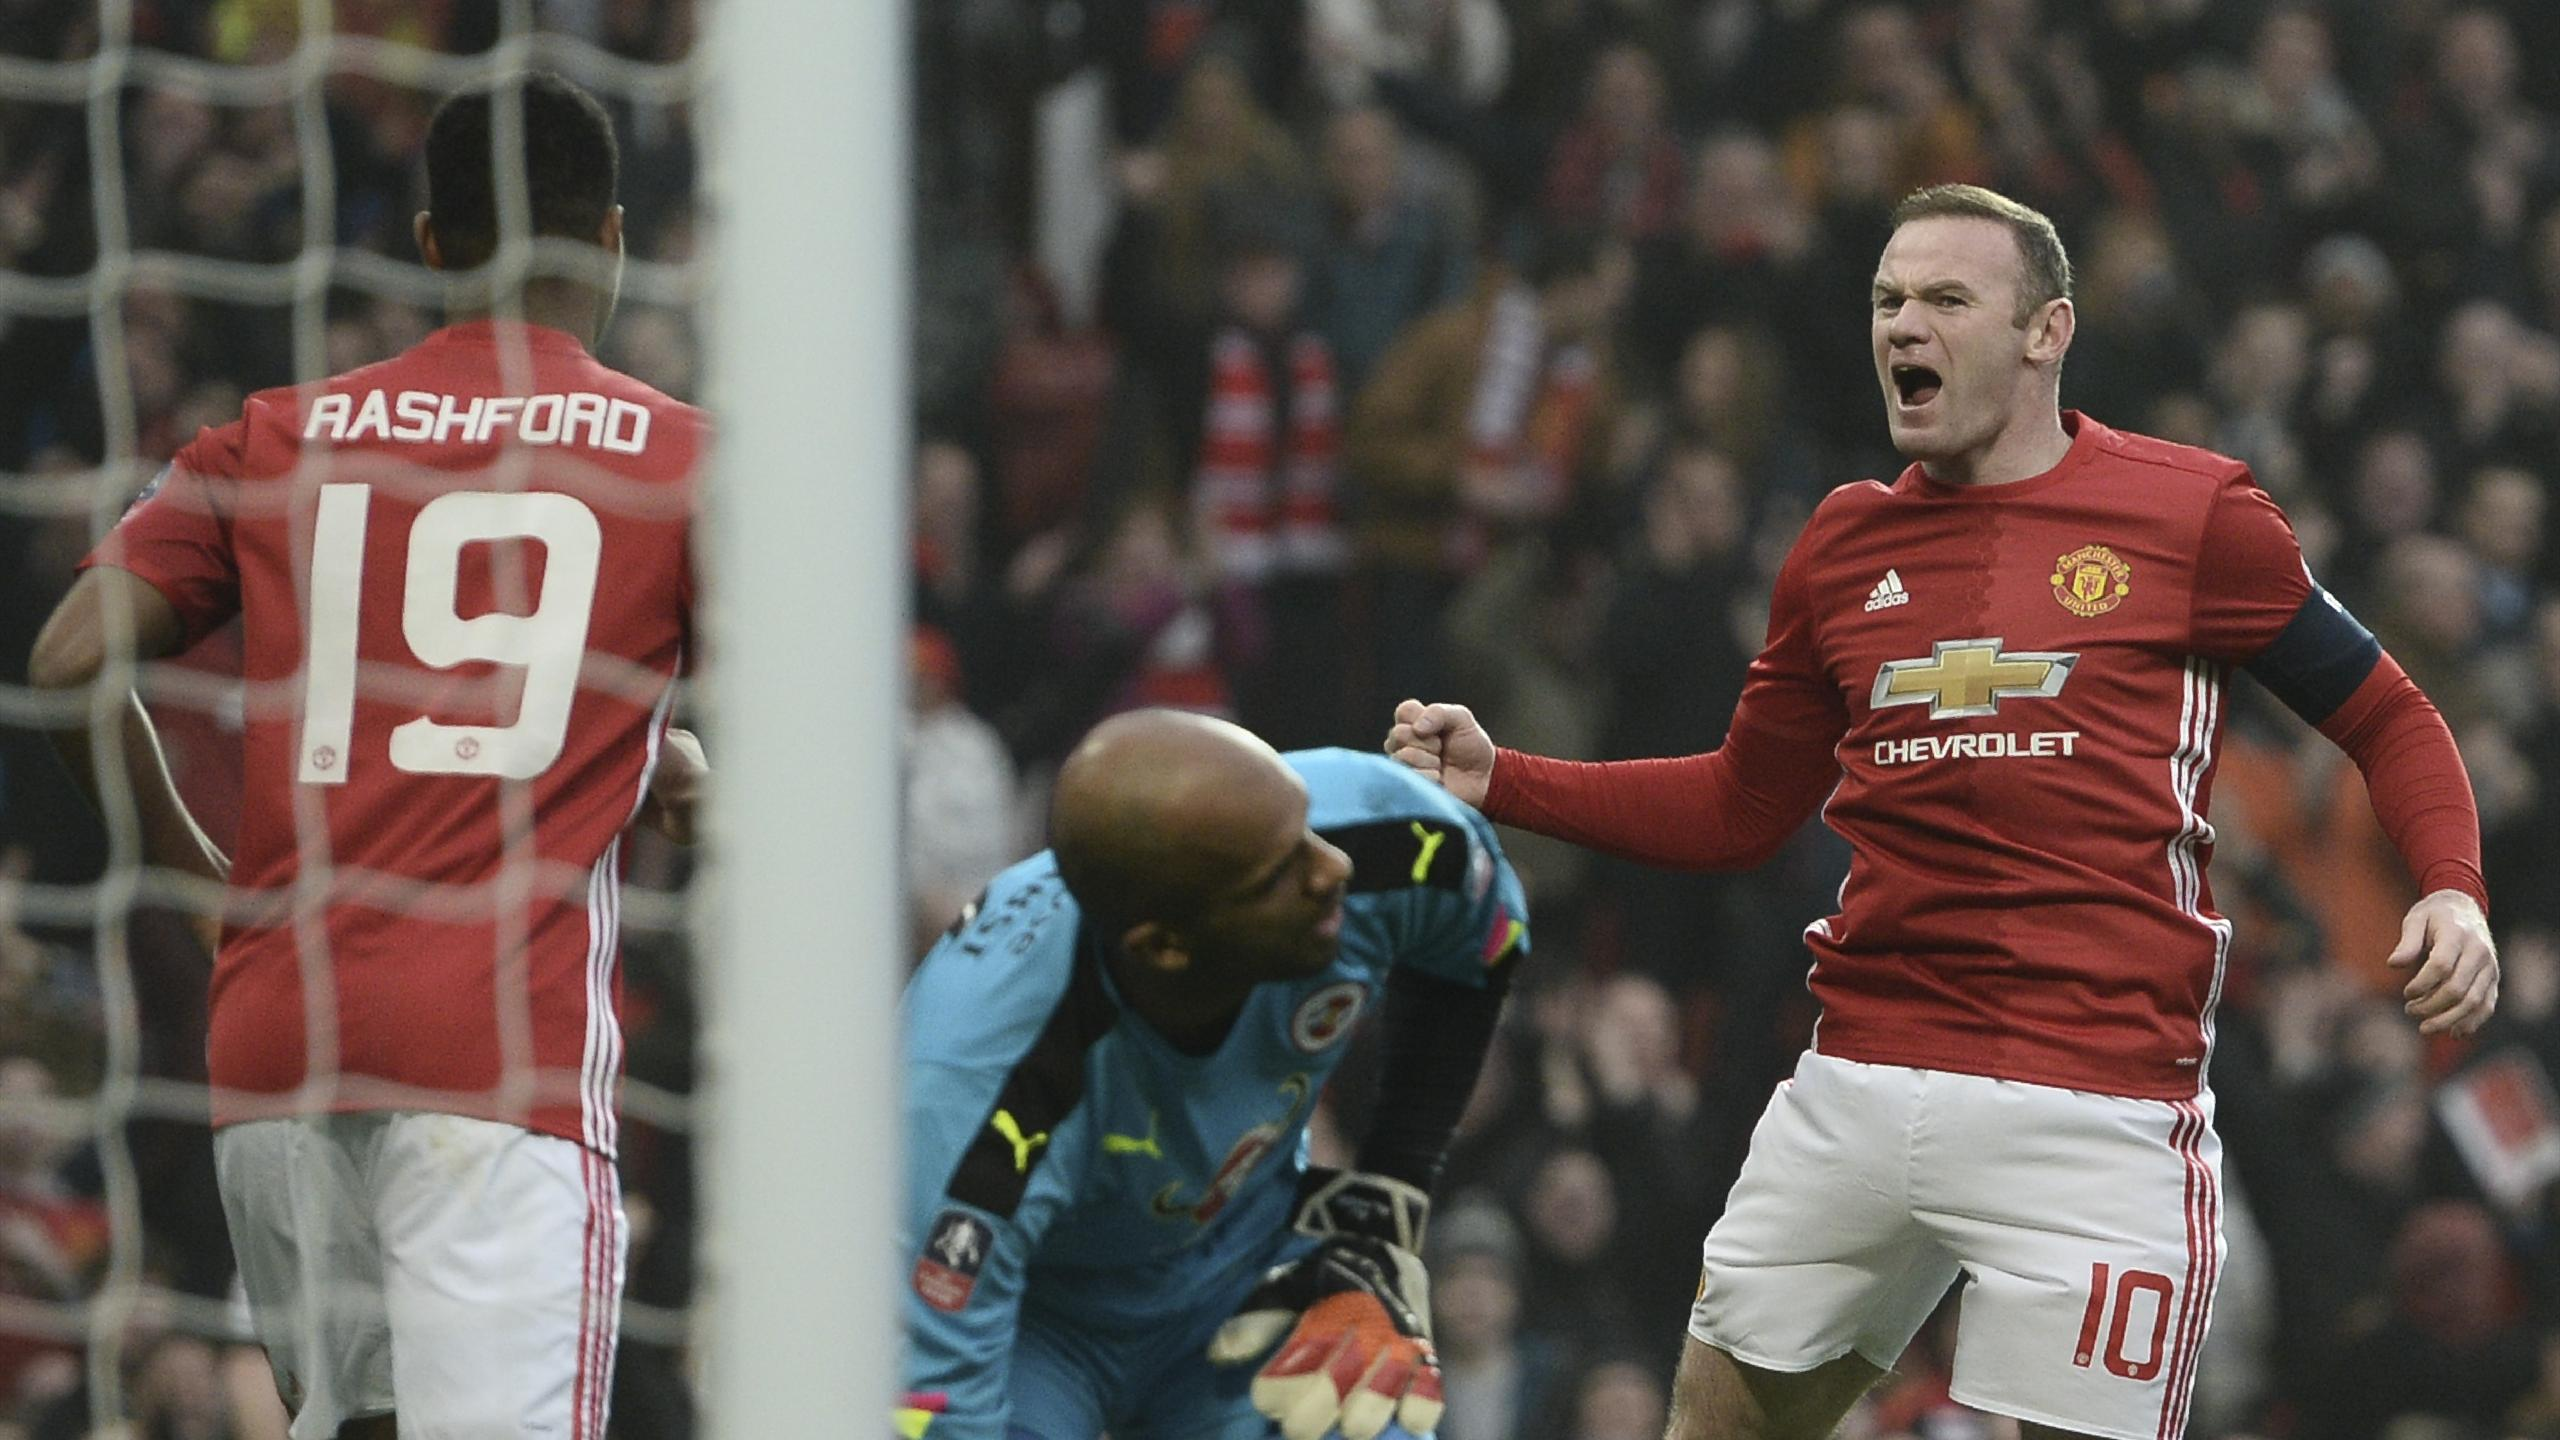 Manchester United's English striker Wayne Rooney (R) celebrates scoring